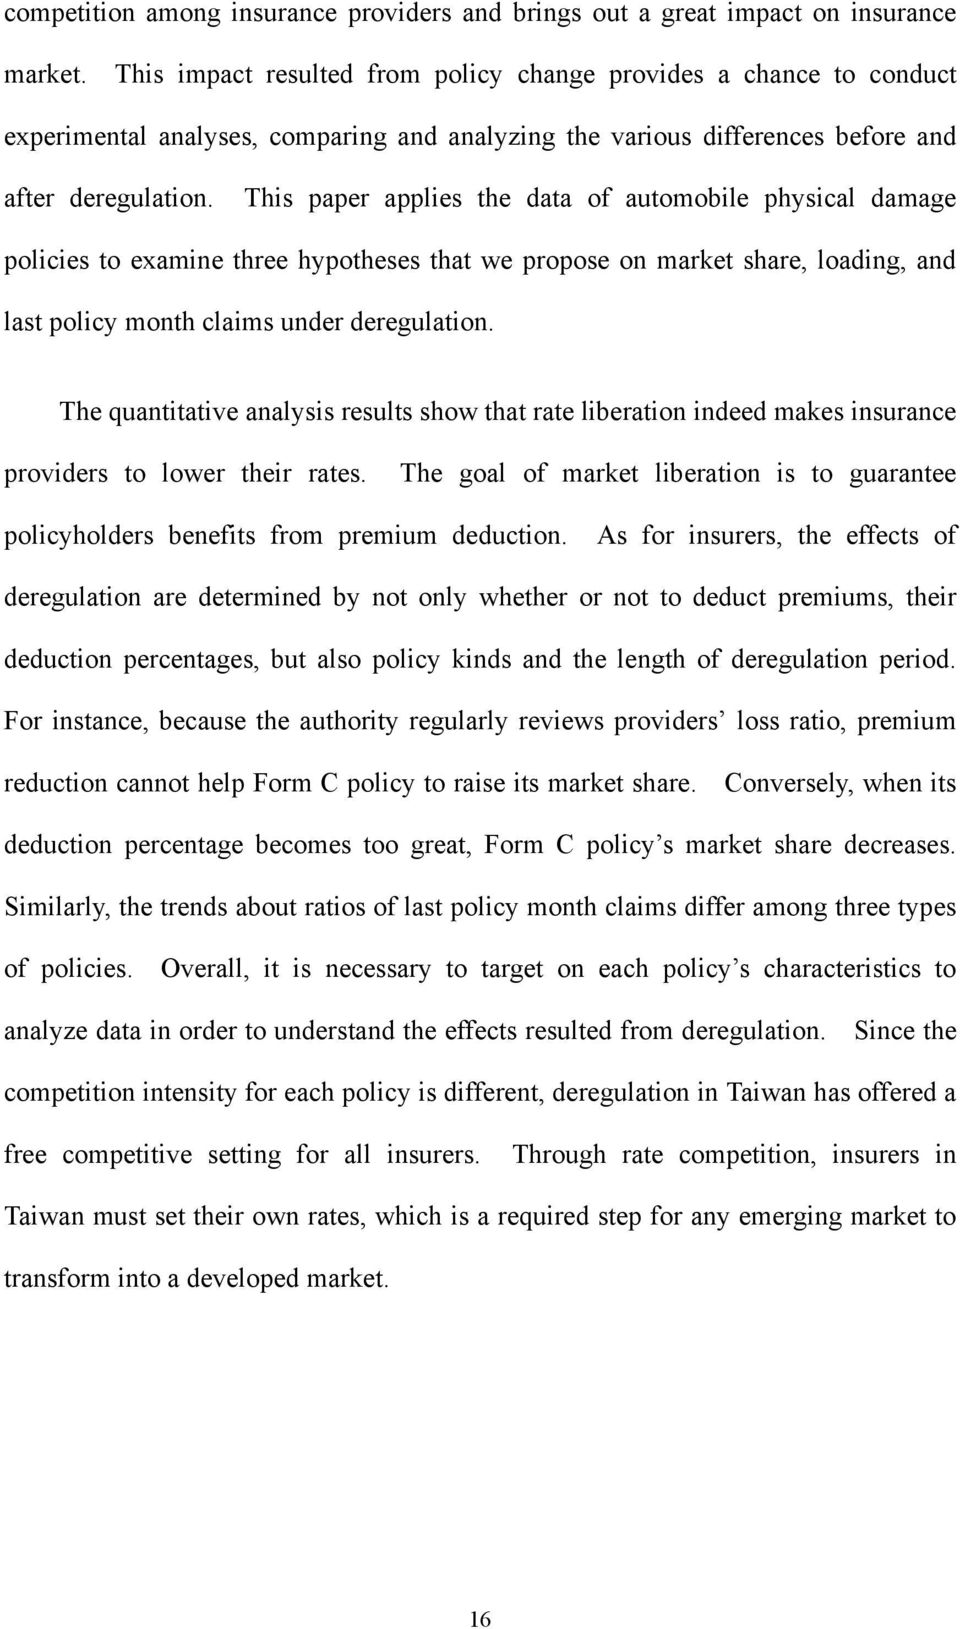 This paper applies the data of automobile physical damage policies to examine three hypotheses that we propose on market share, loading, and last policy month claims under deregulation.